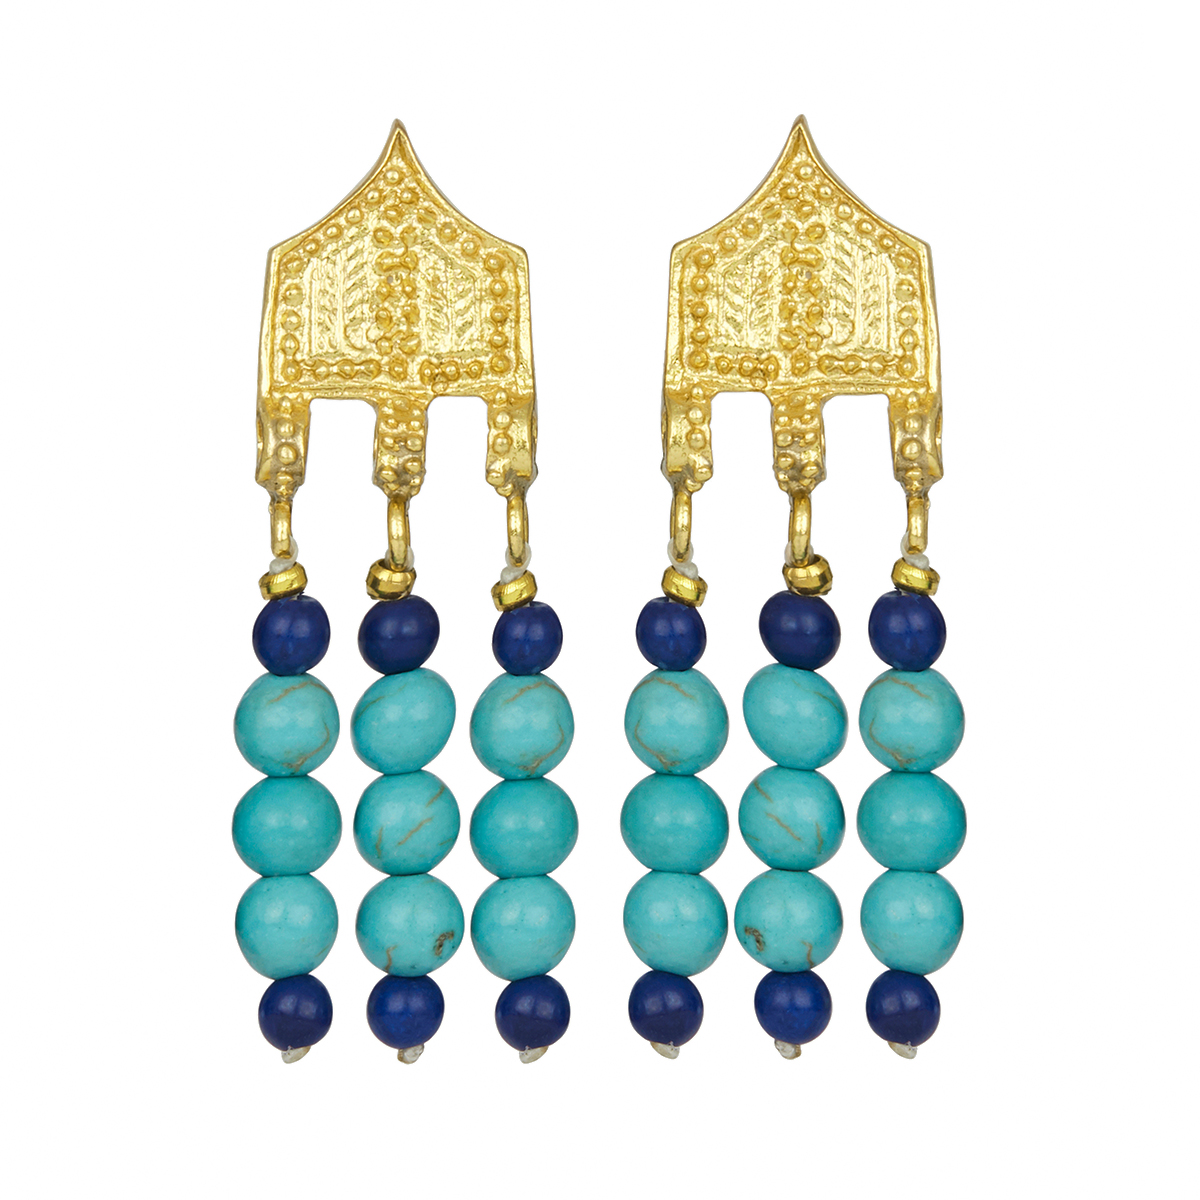 Turquoise and lapis lazuli stud earrings by Ottoman Hands